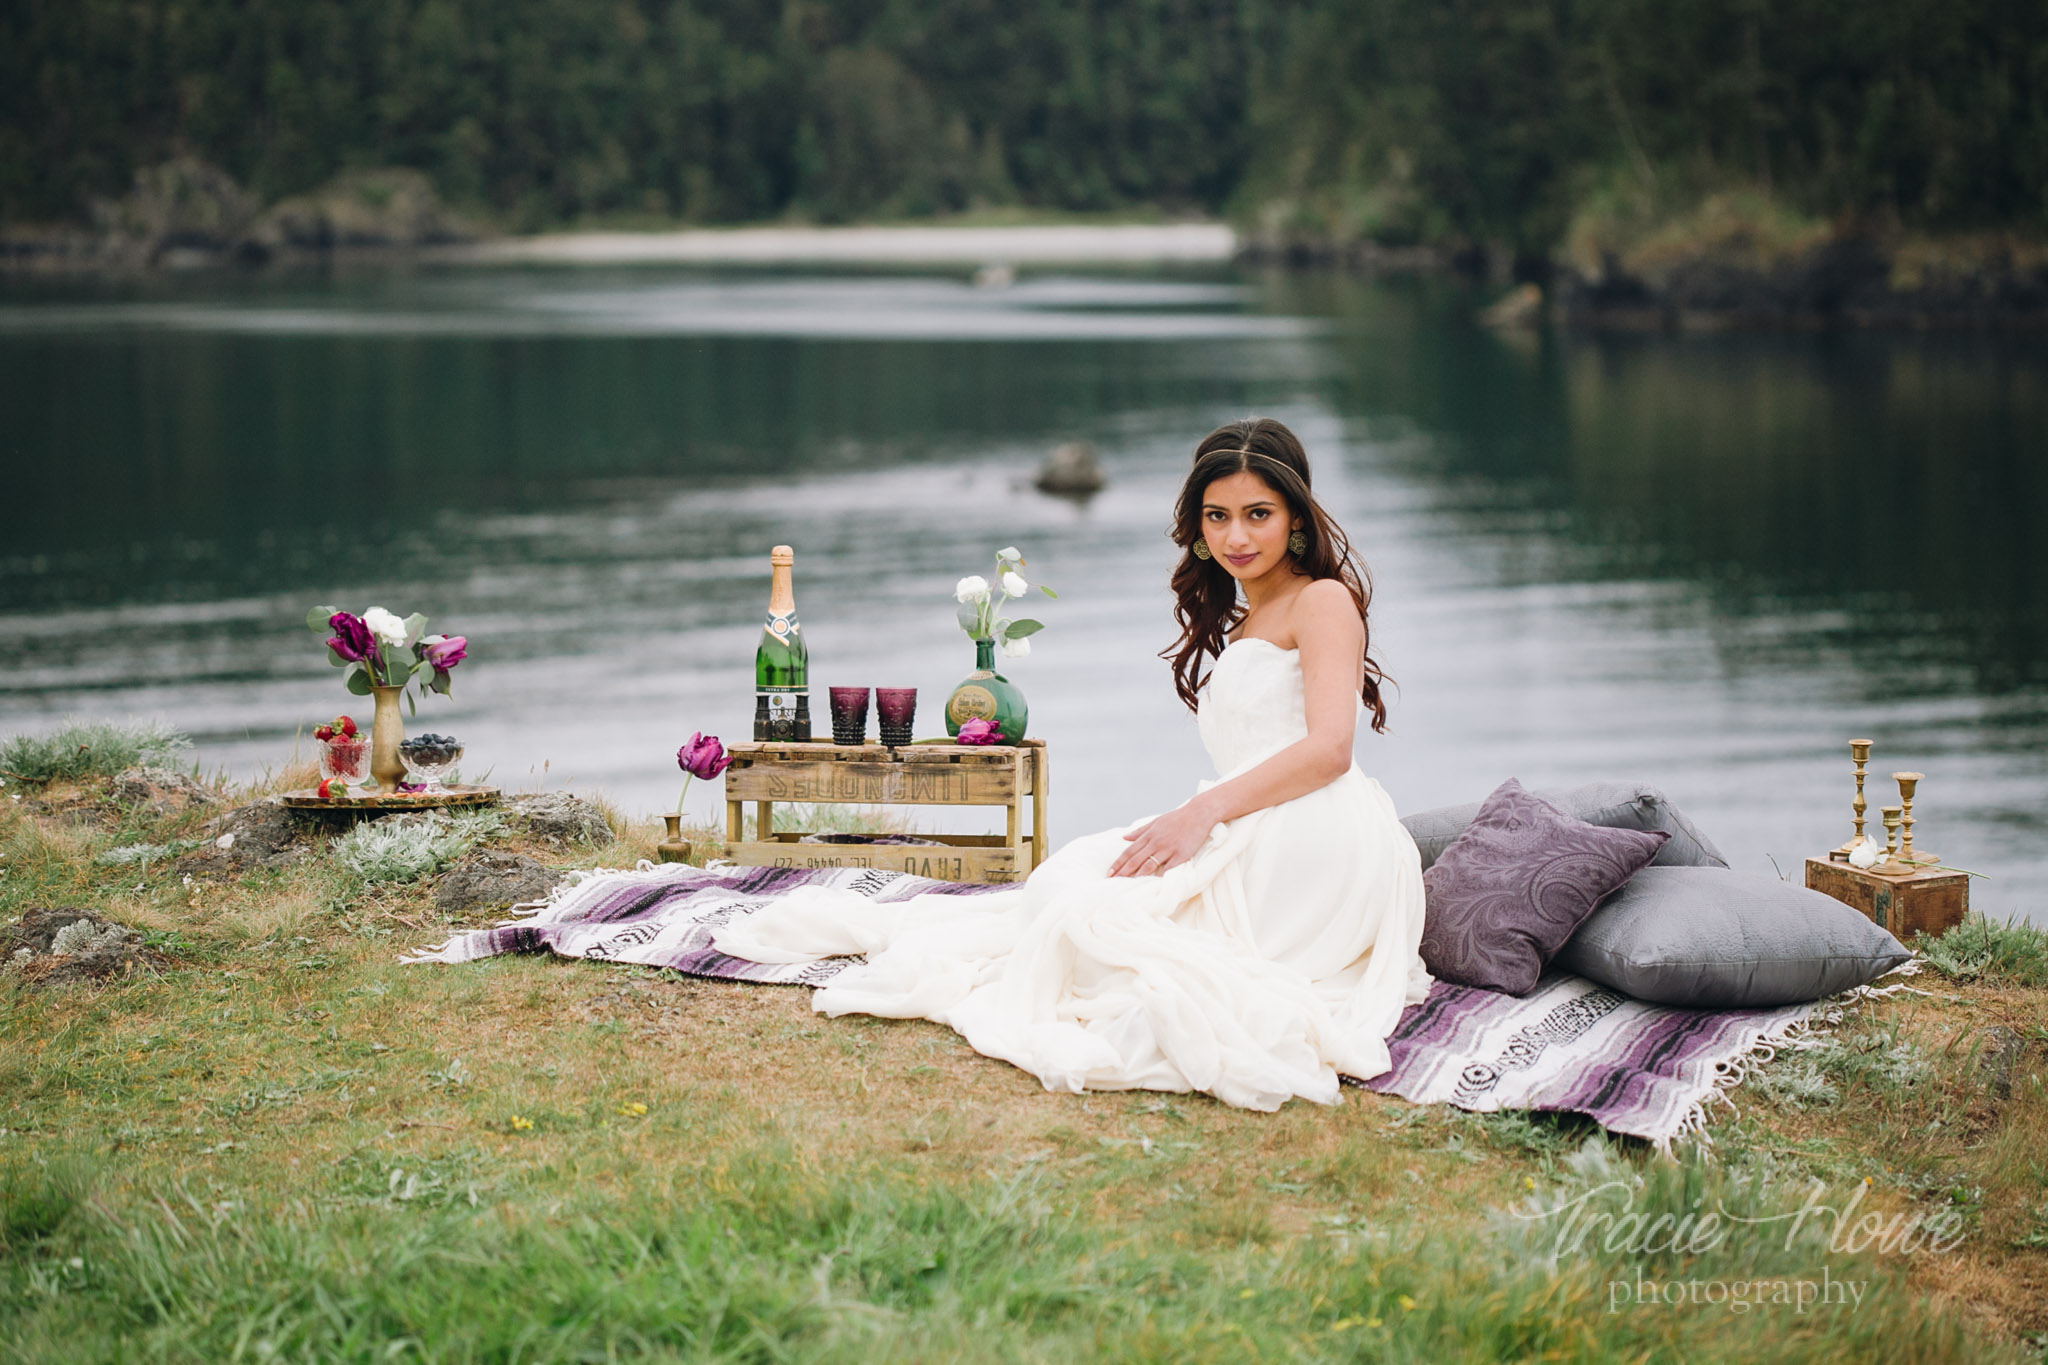 Tracie Howe Photography watermarked for sharing-72.jpg